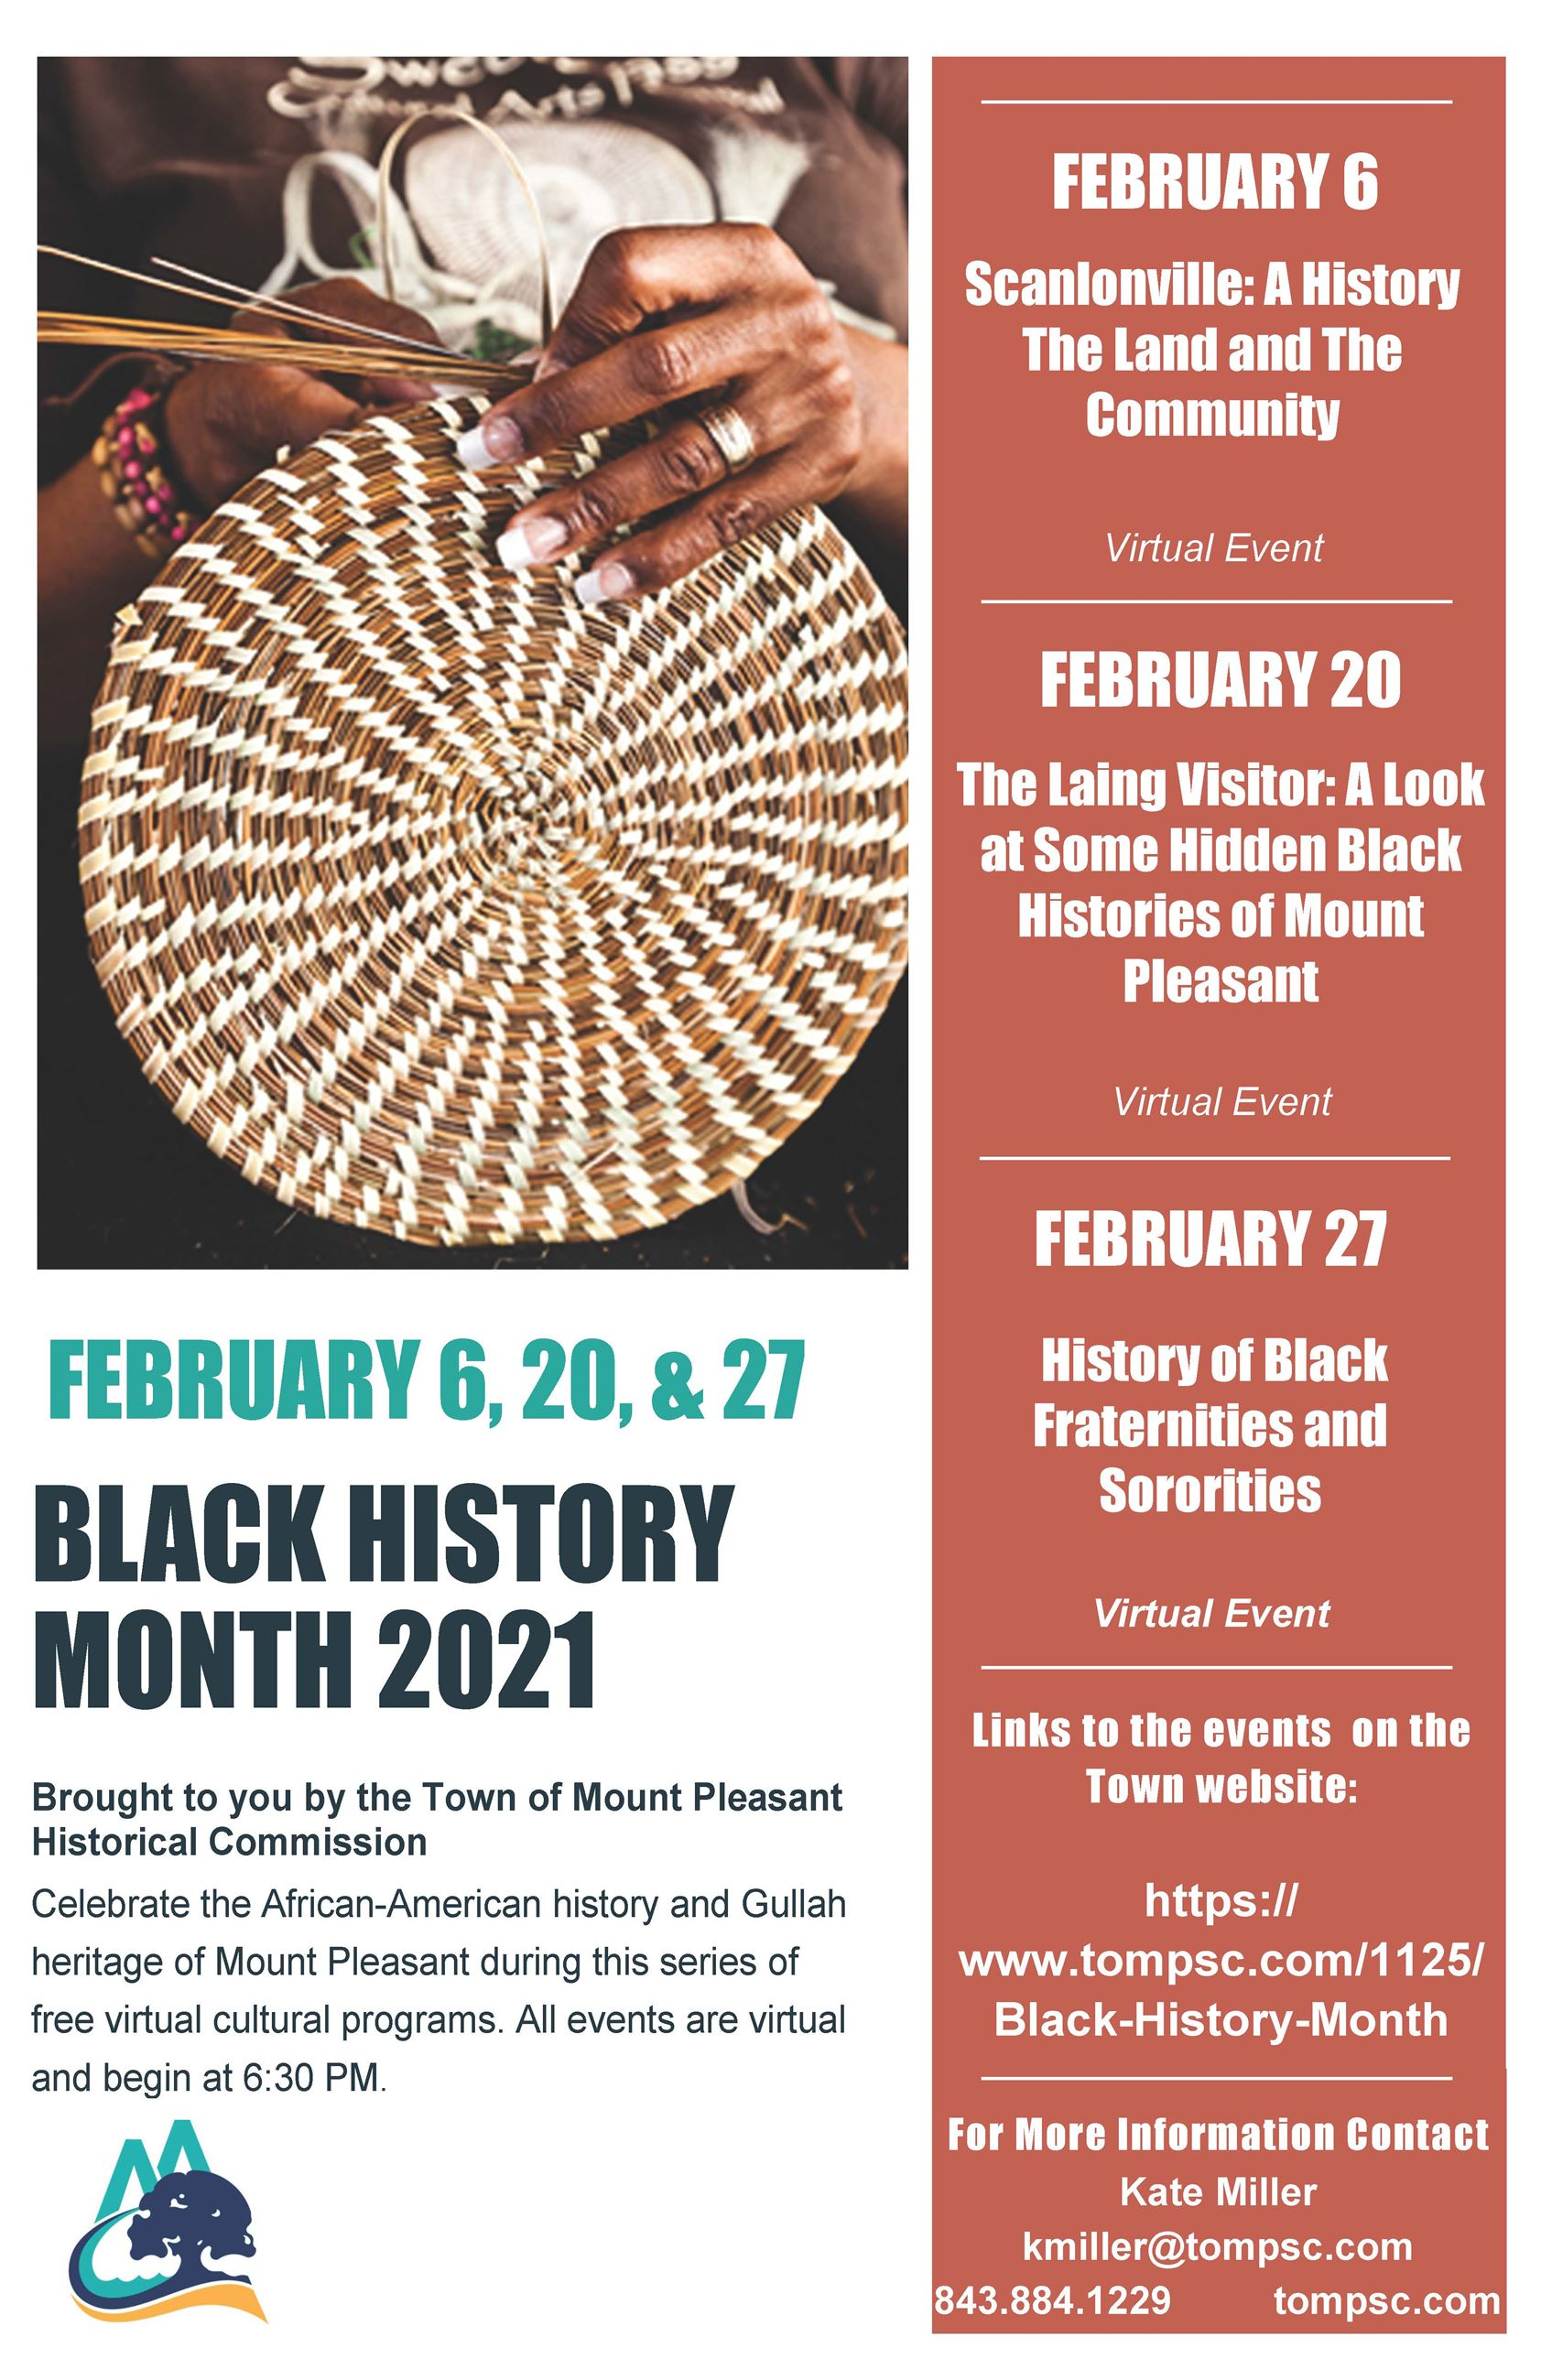 Black History Month 2021 Poster 11_w x 17_h